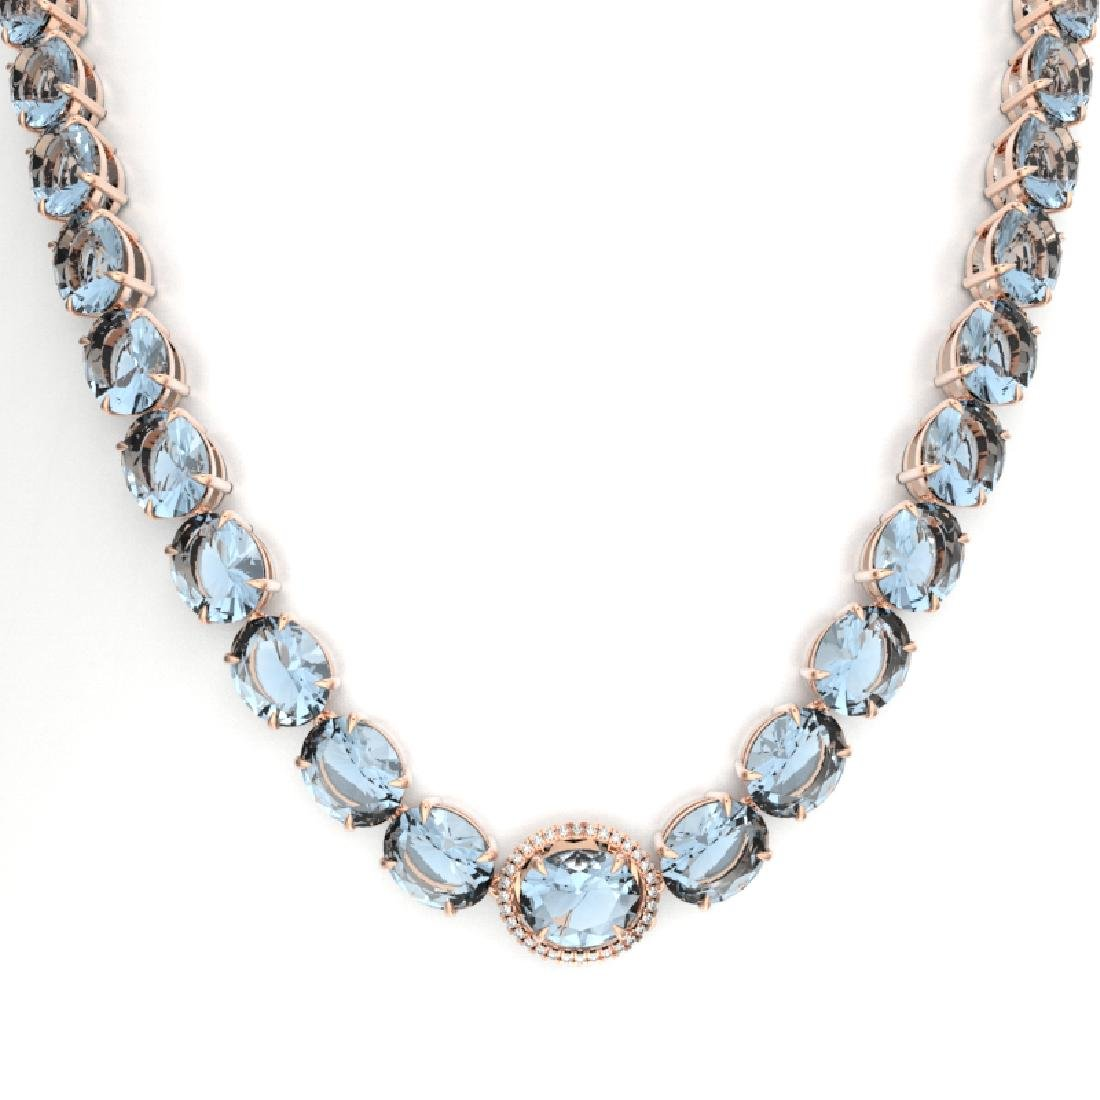 136 CTW Aquamarine & VS/SI Diamond Necklace 14K Rose - 2